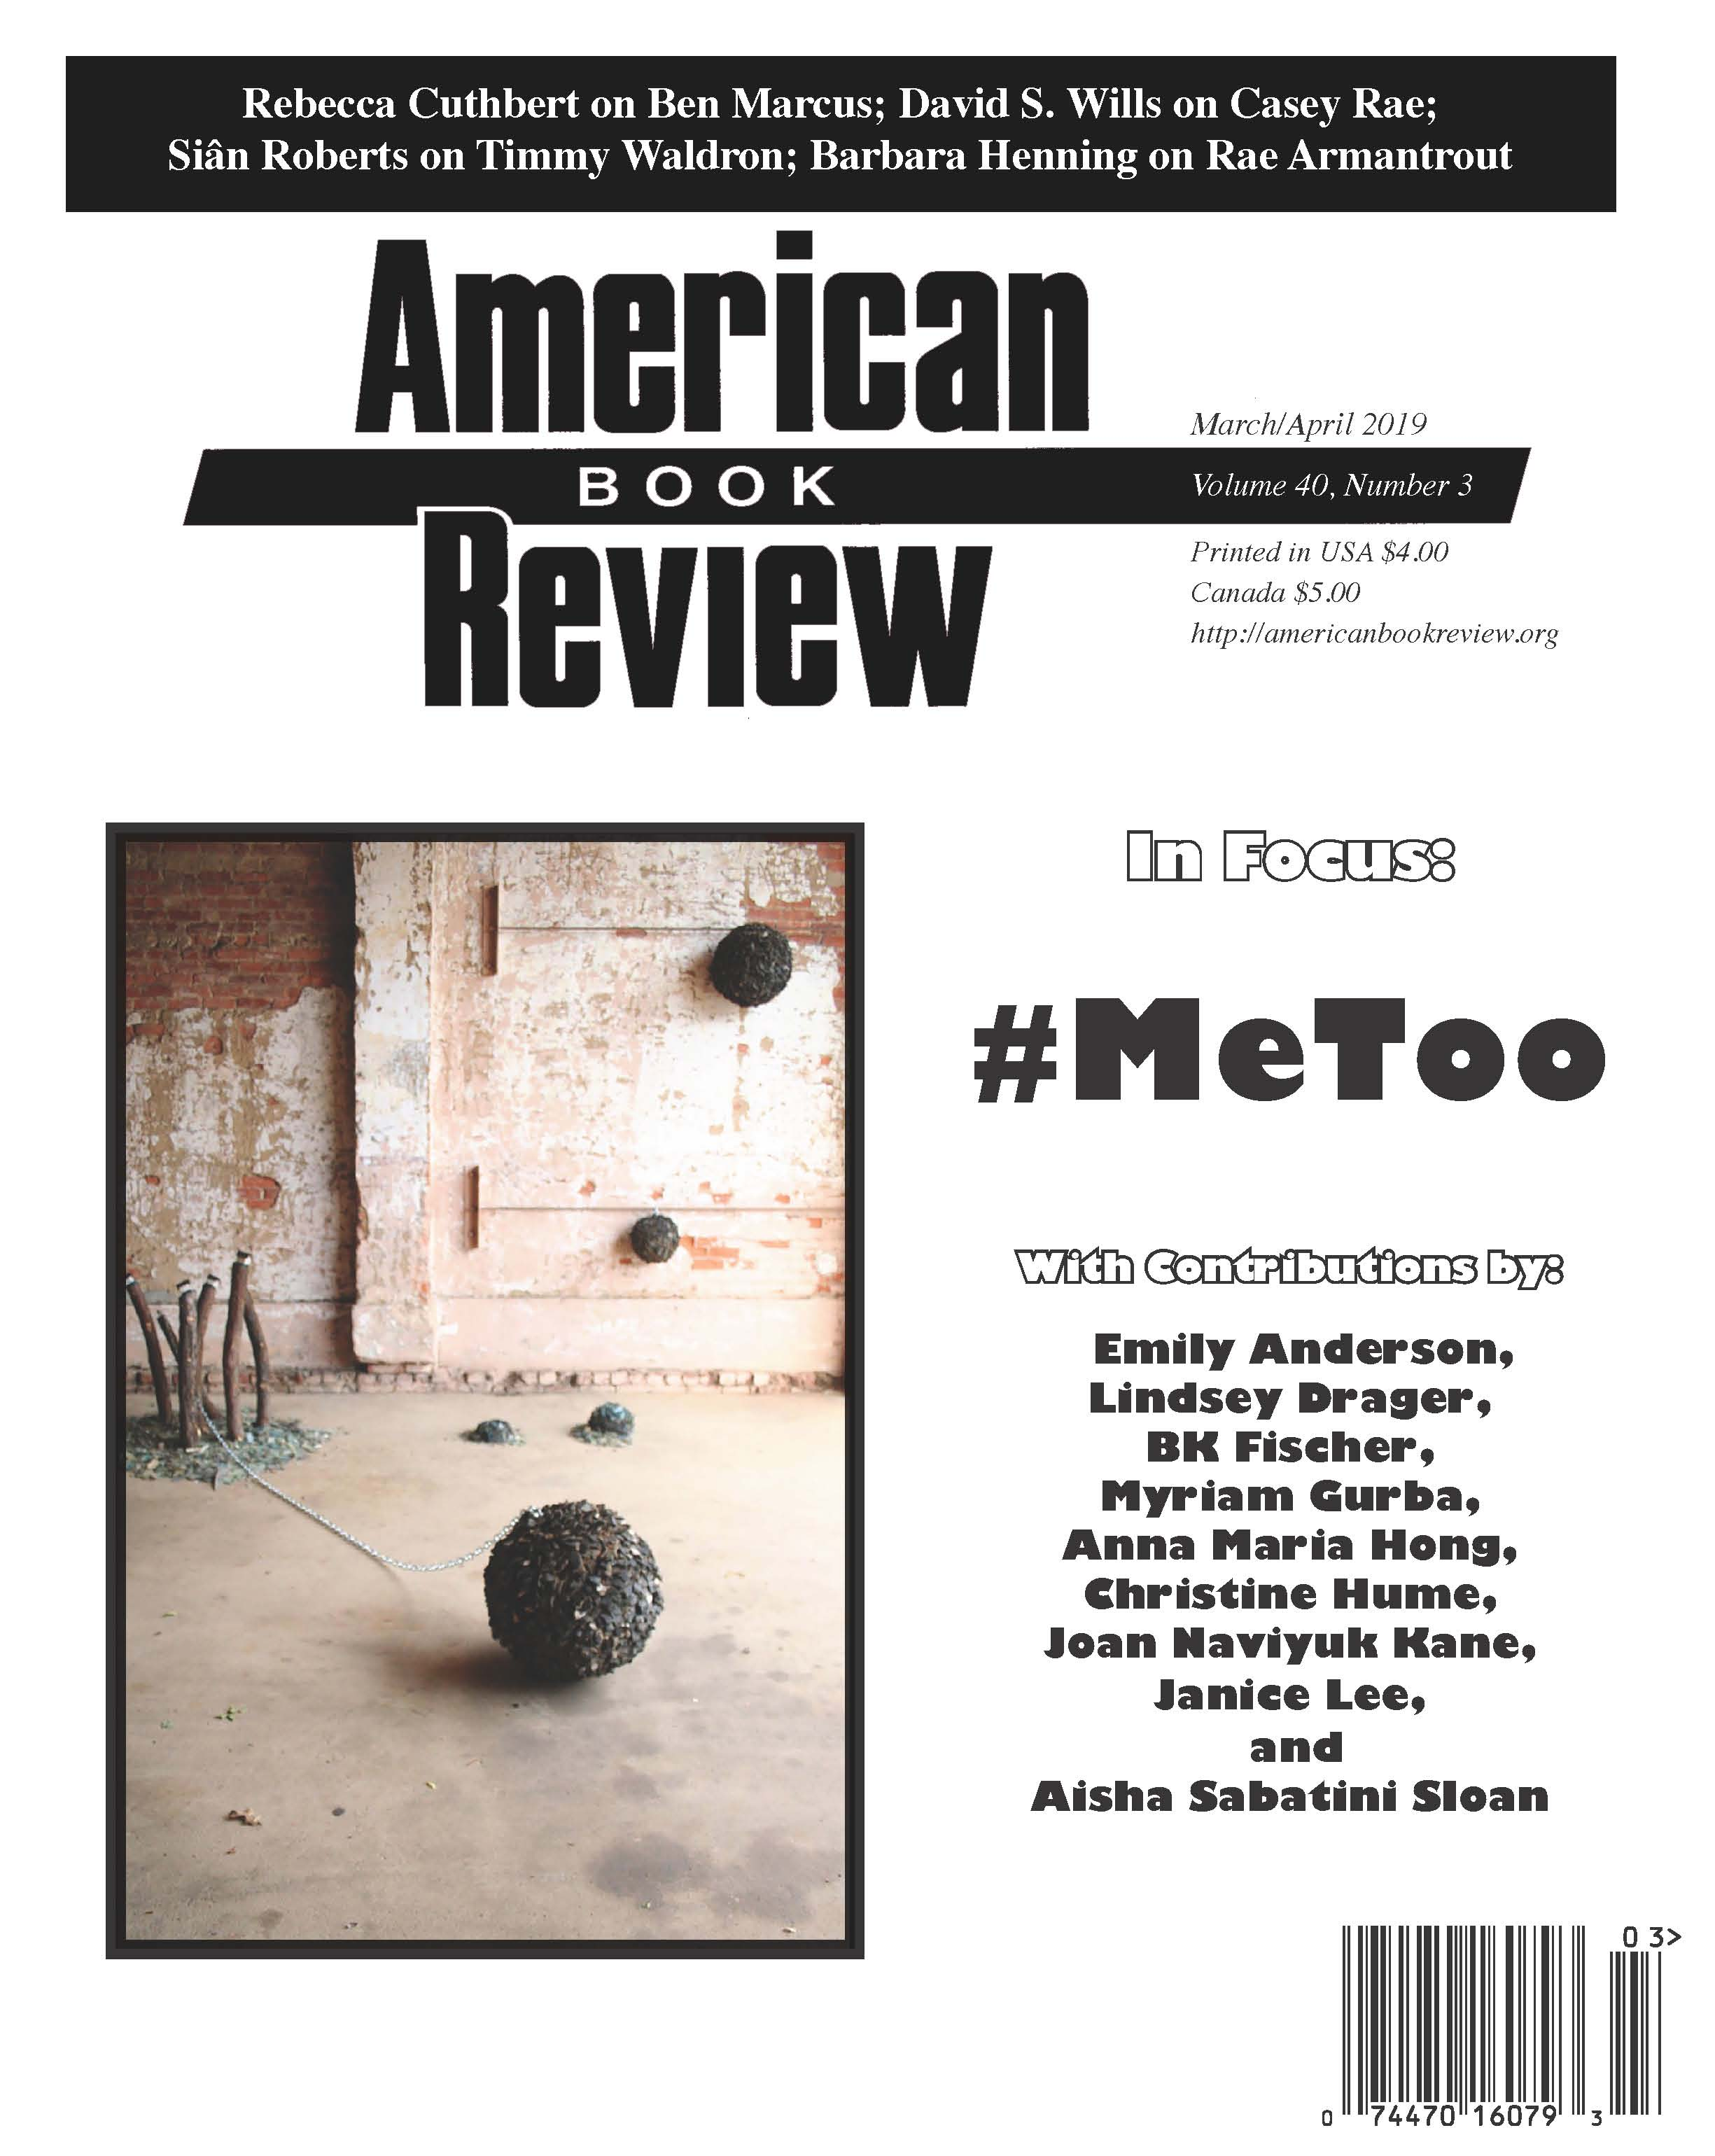 AMERICAN BOOK REVIEW — akinoga press